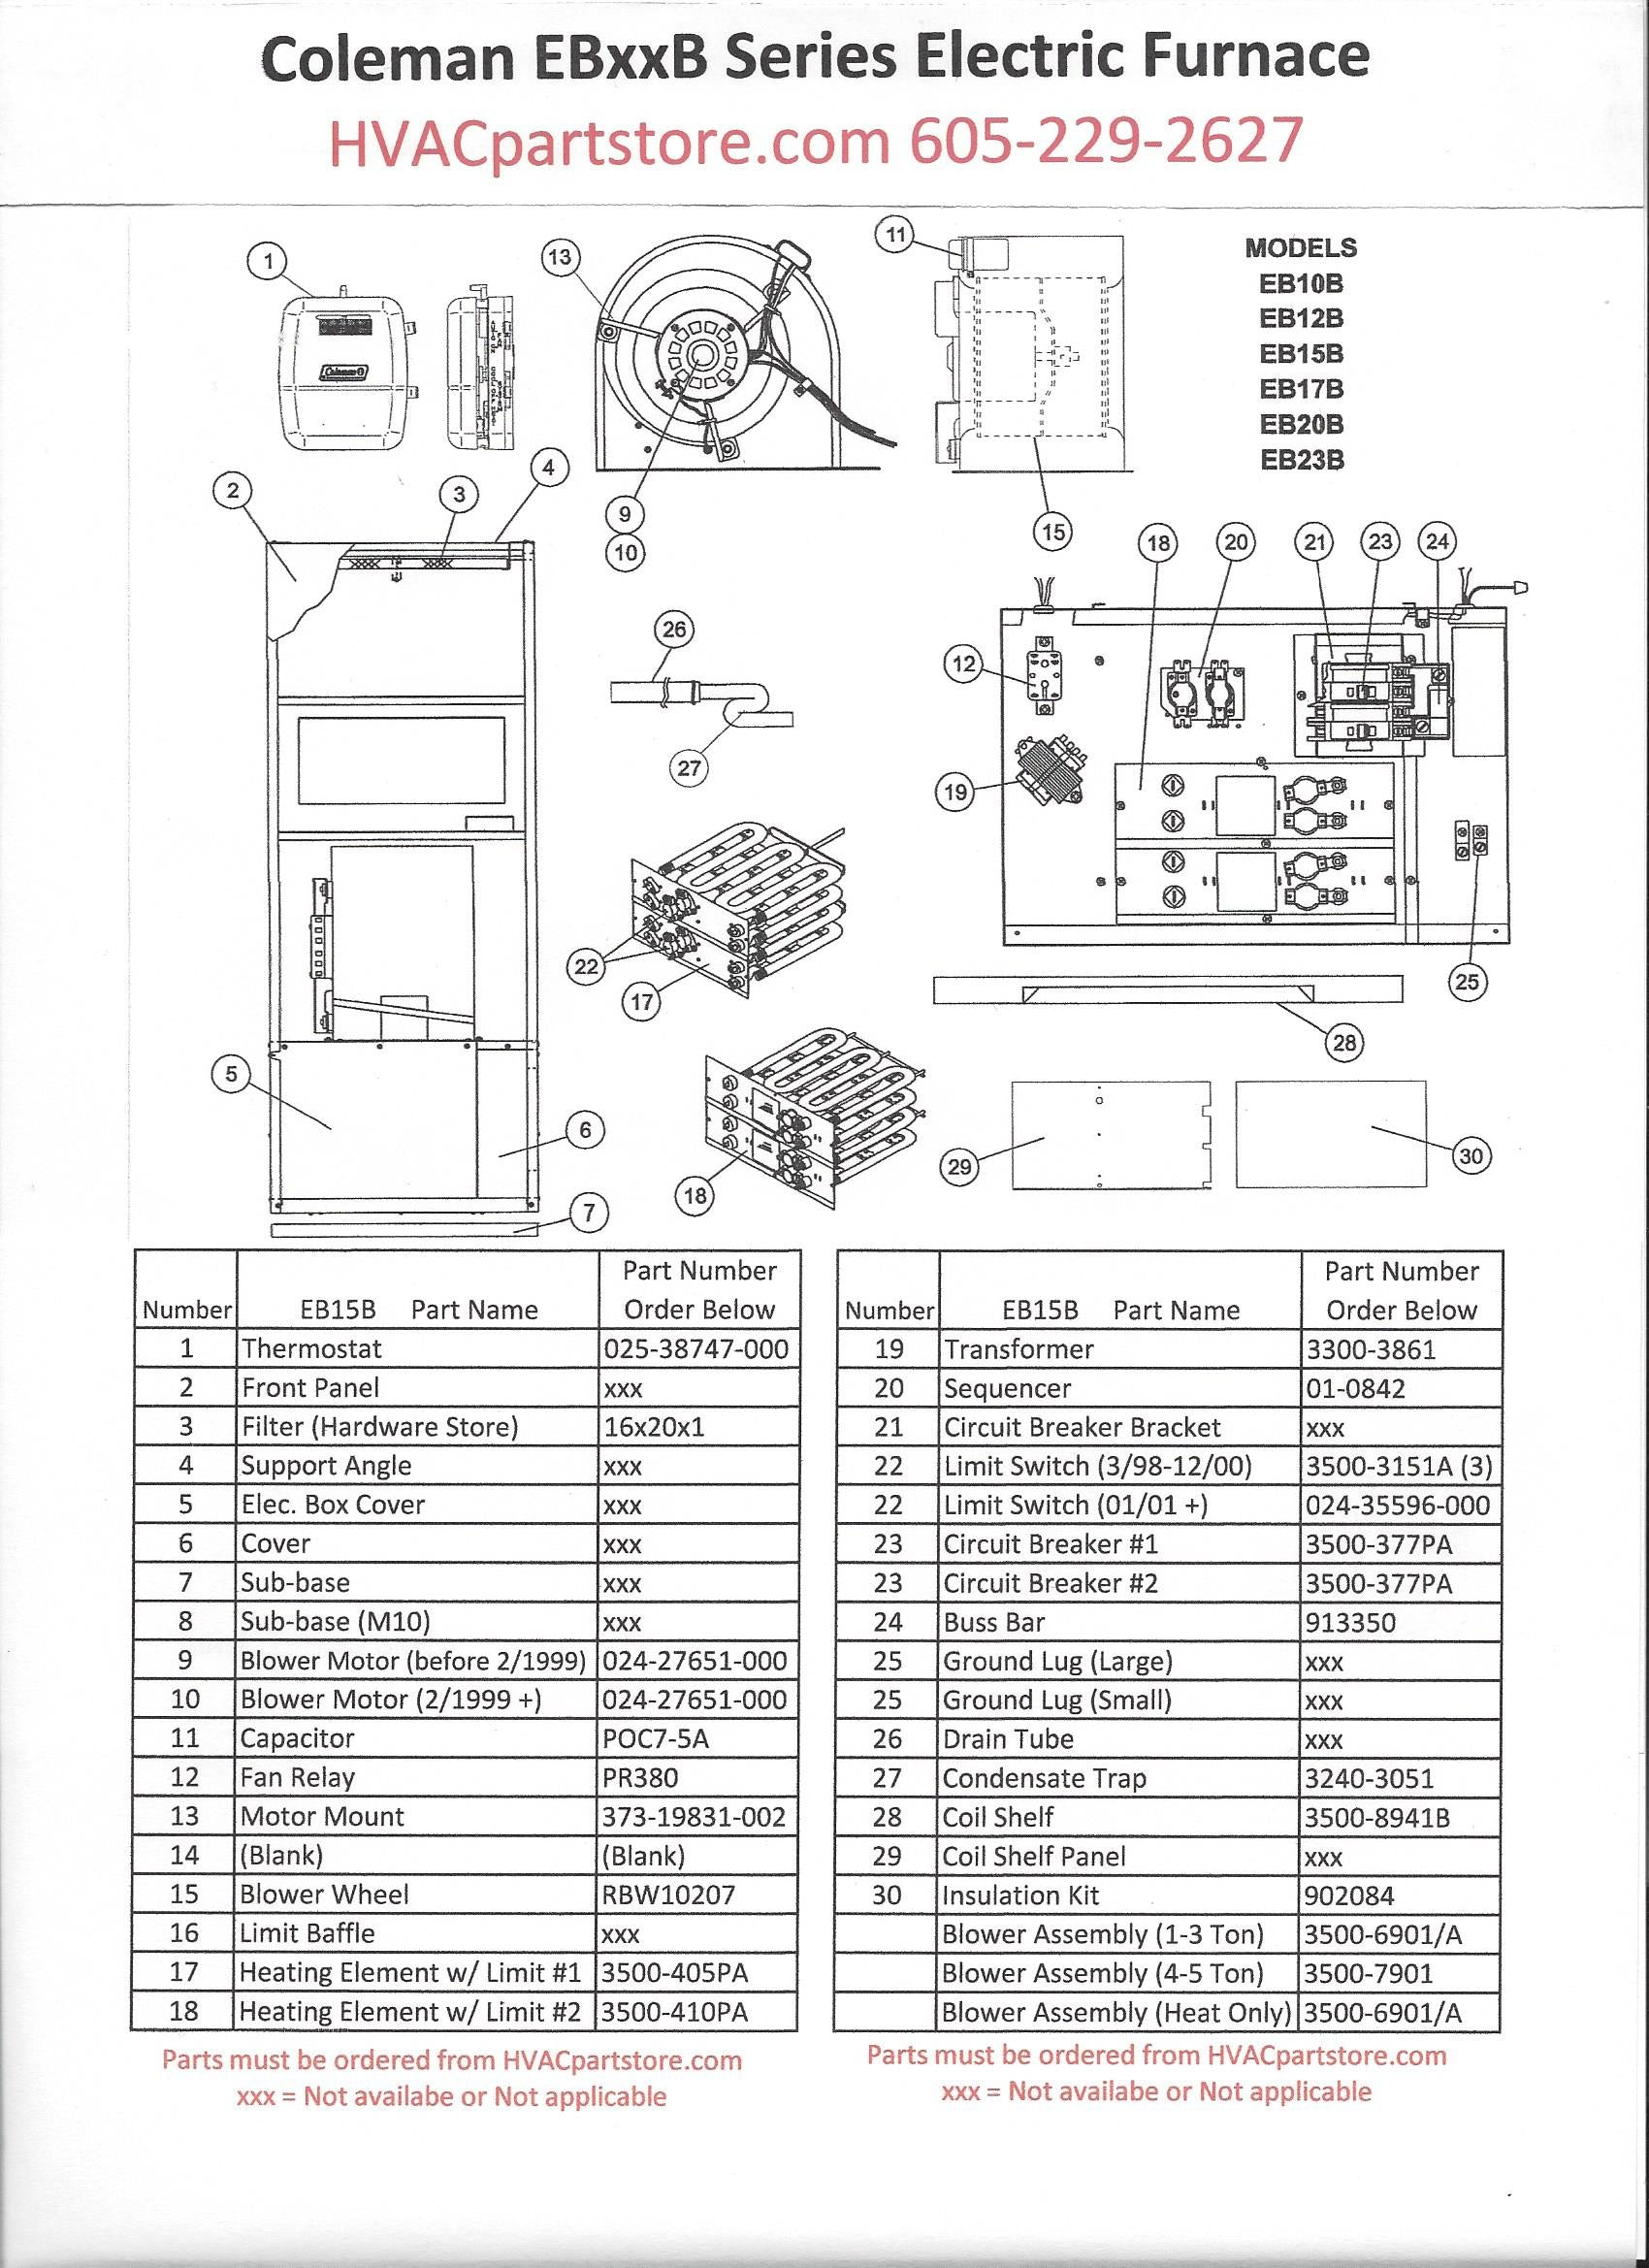 EB15Bparts?403081896817250070 eb15b coleman electric furnace parts hvacpartstore coleman eb15b wiring diagram at edmiracle.co